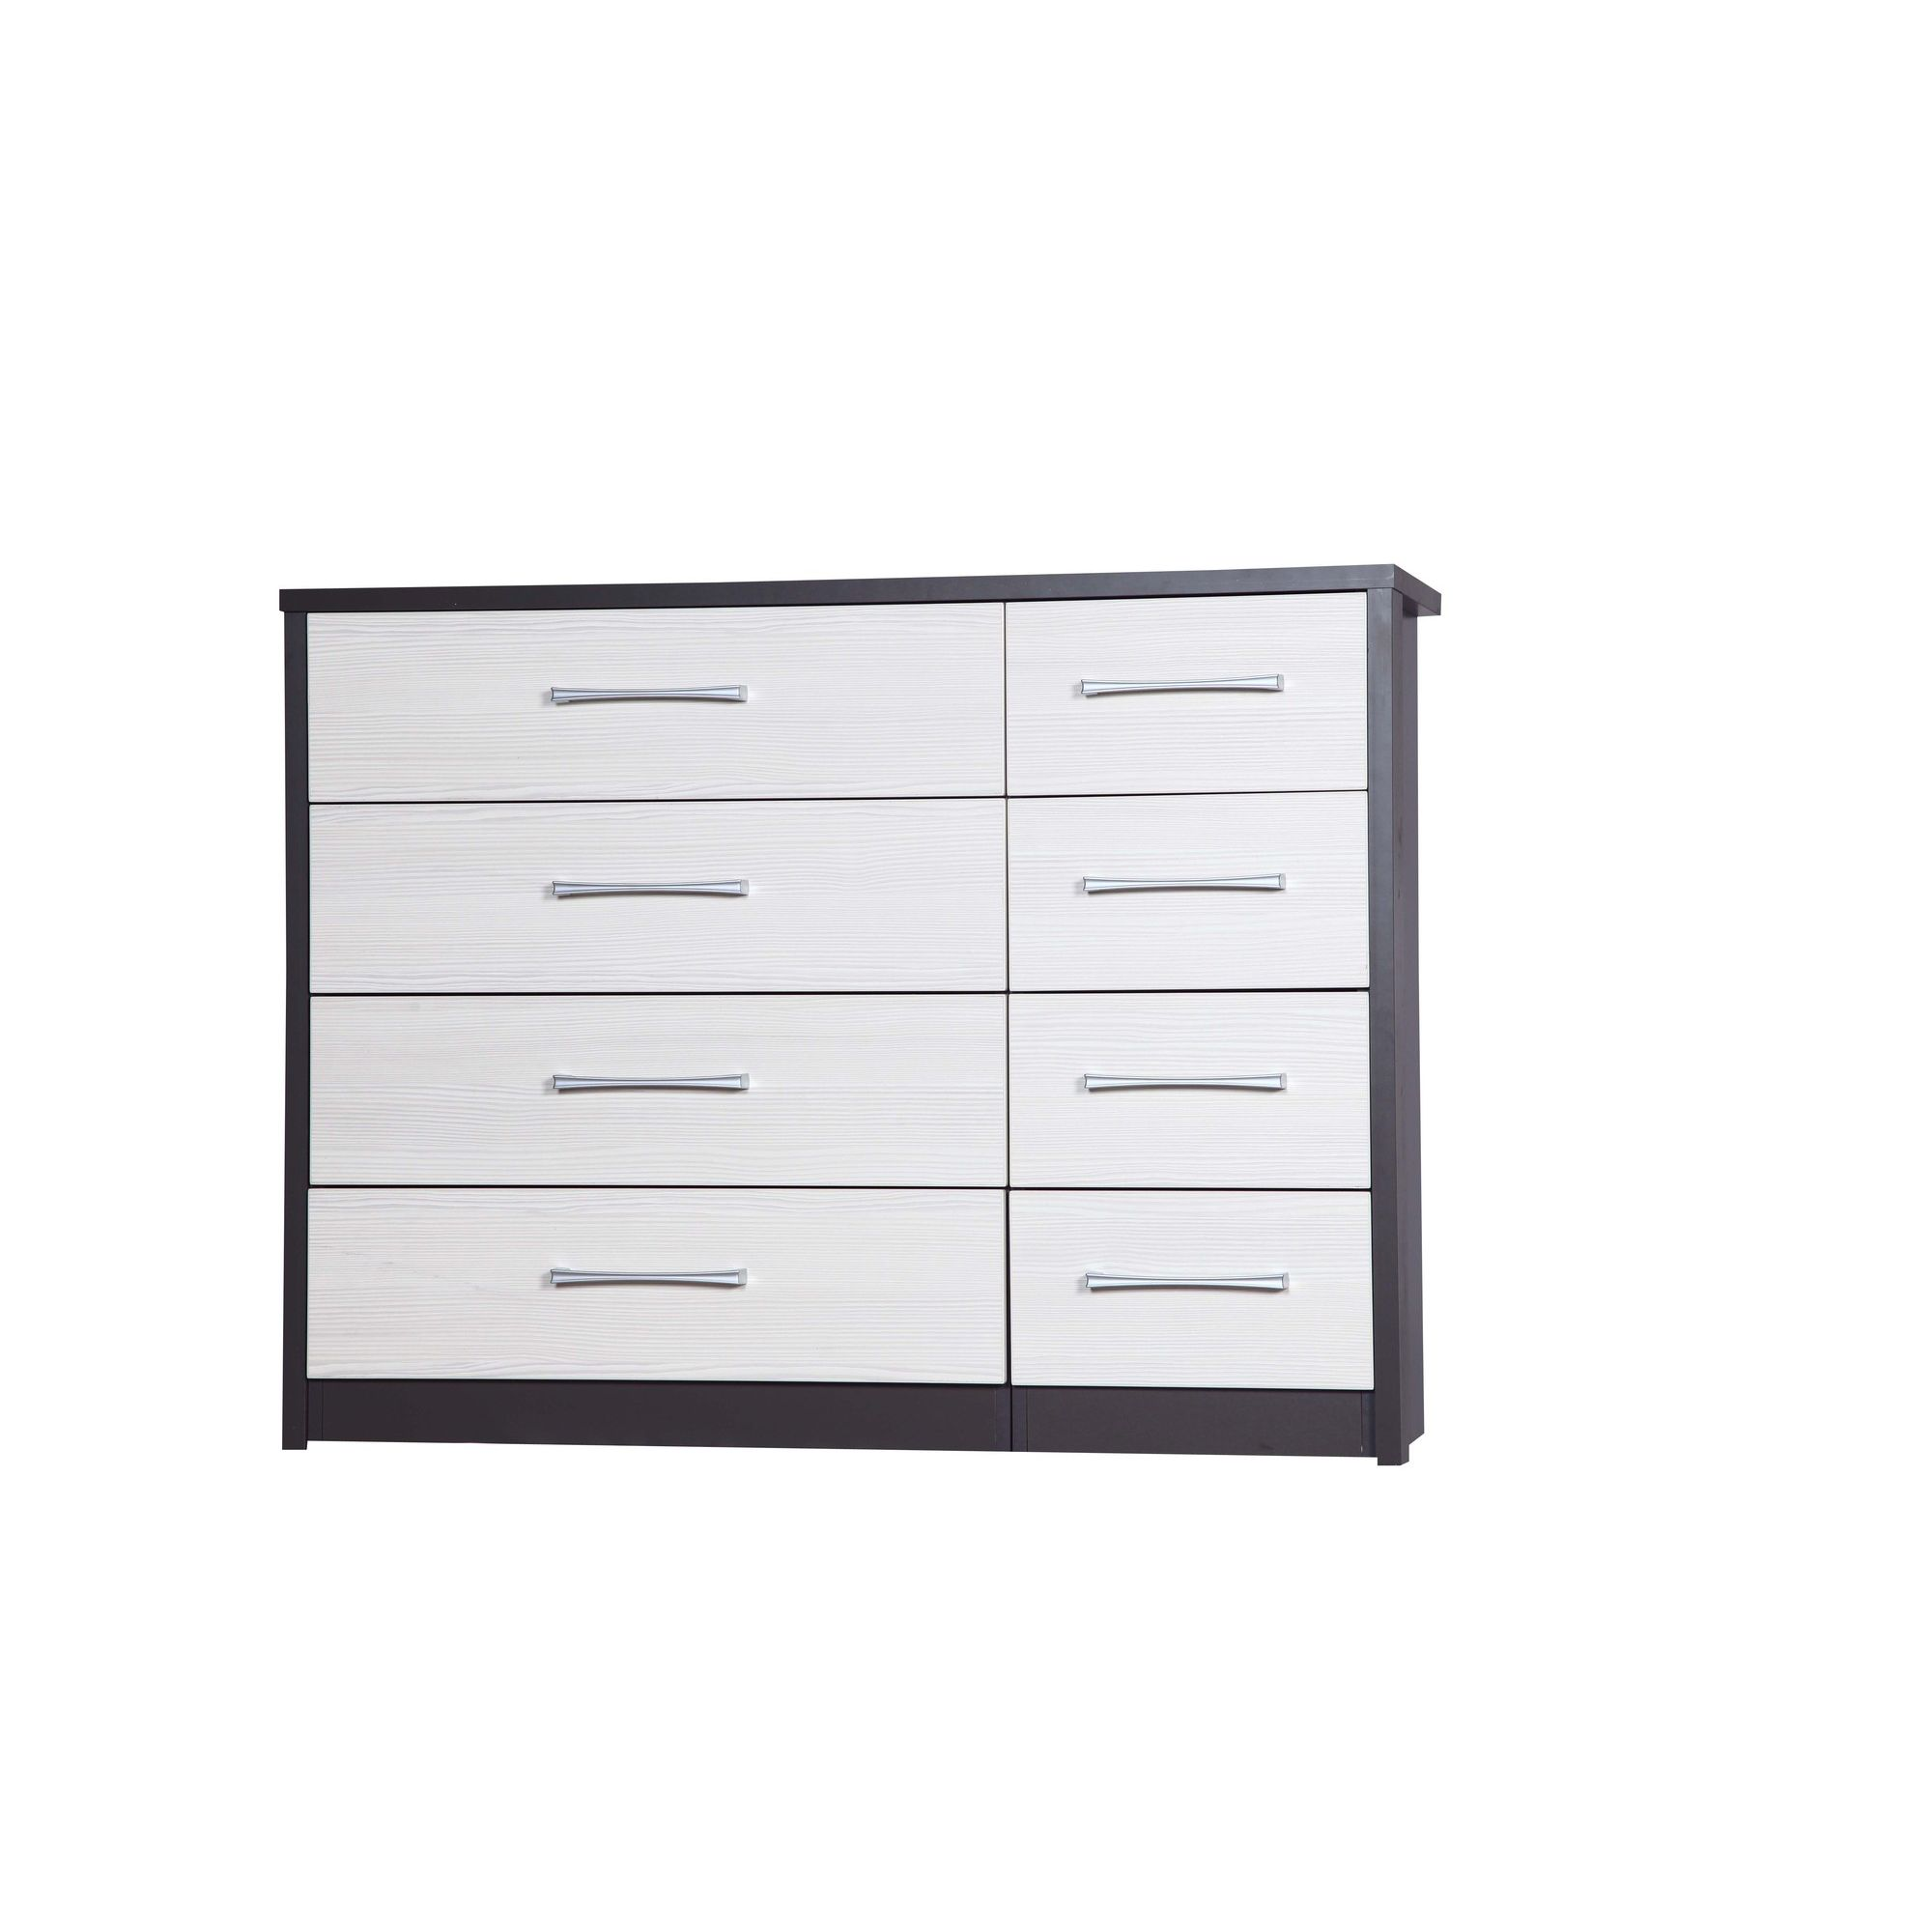 Alto Furniture Avola 8 Drawer Double Chest - Grey Carcass With White Avola at Tescos Direct